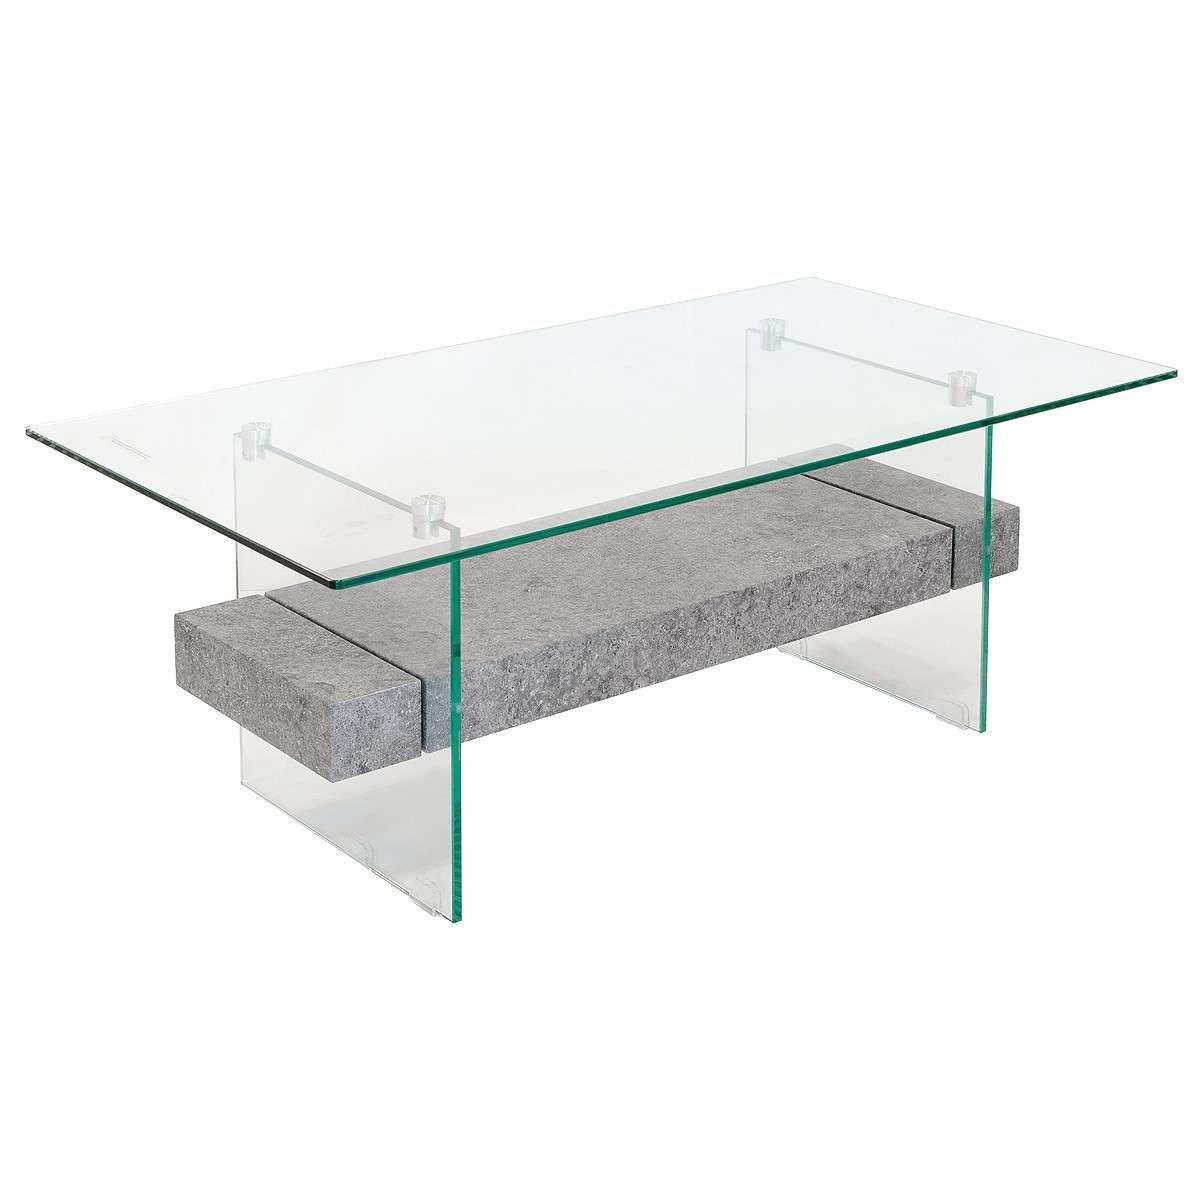 Stone Effect Glass Coffee Table – Be Fabulous! Within Recent Stone And Glass Coffee Tables (View 17 of 20)